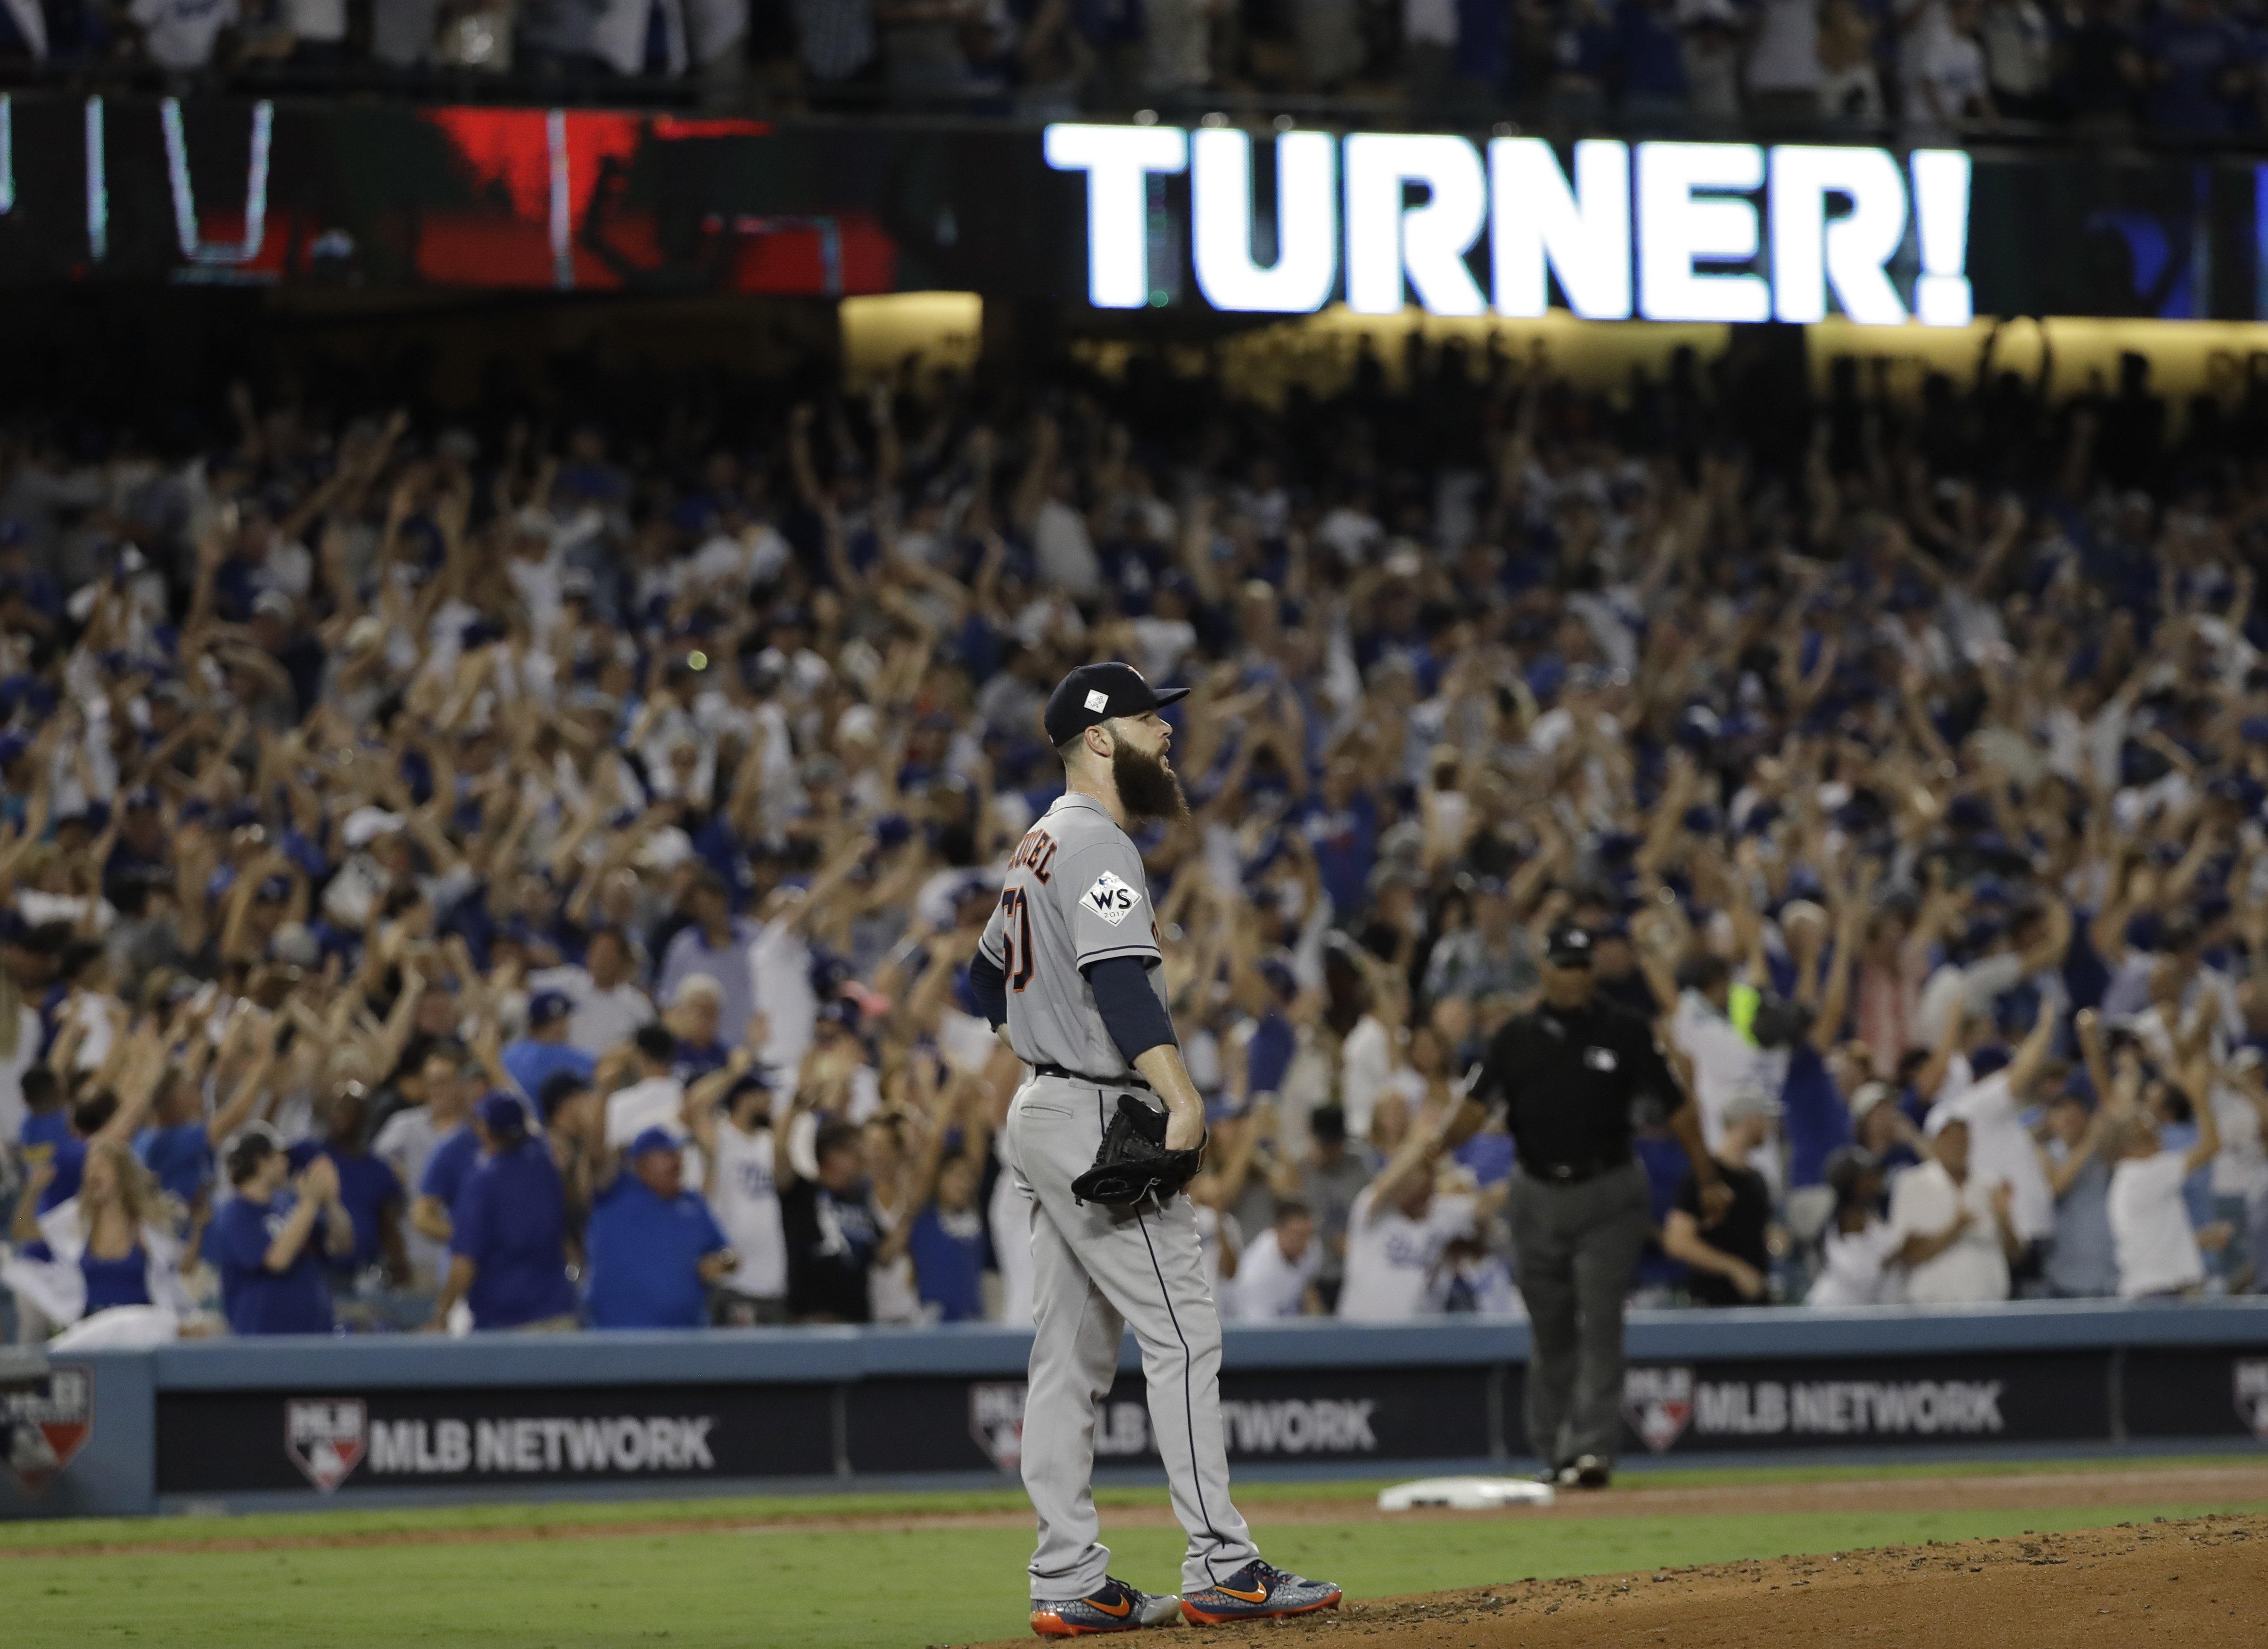 Houston Astros starting pitcher Dallas Keuchel- reacts after giving up a two-run home run to Los Angeles Dodgers' Justin Turner during the sixth inning of Game 1 of baseball's World Series Tuesday, Oct. 24, 2017, in Los Angeles. (AP Photo/David J. Phillip)